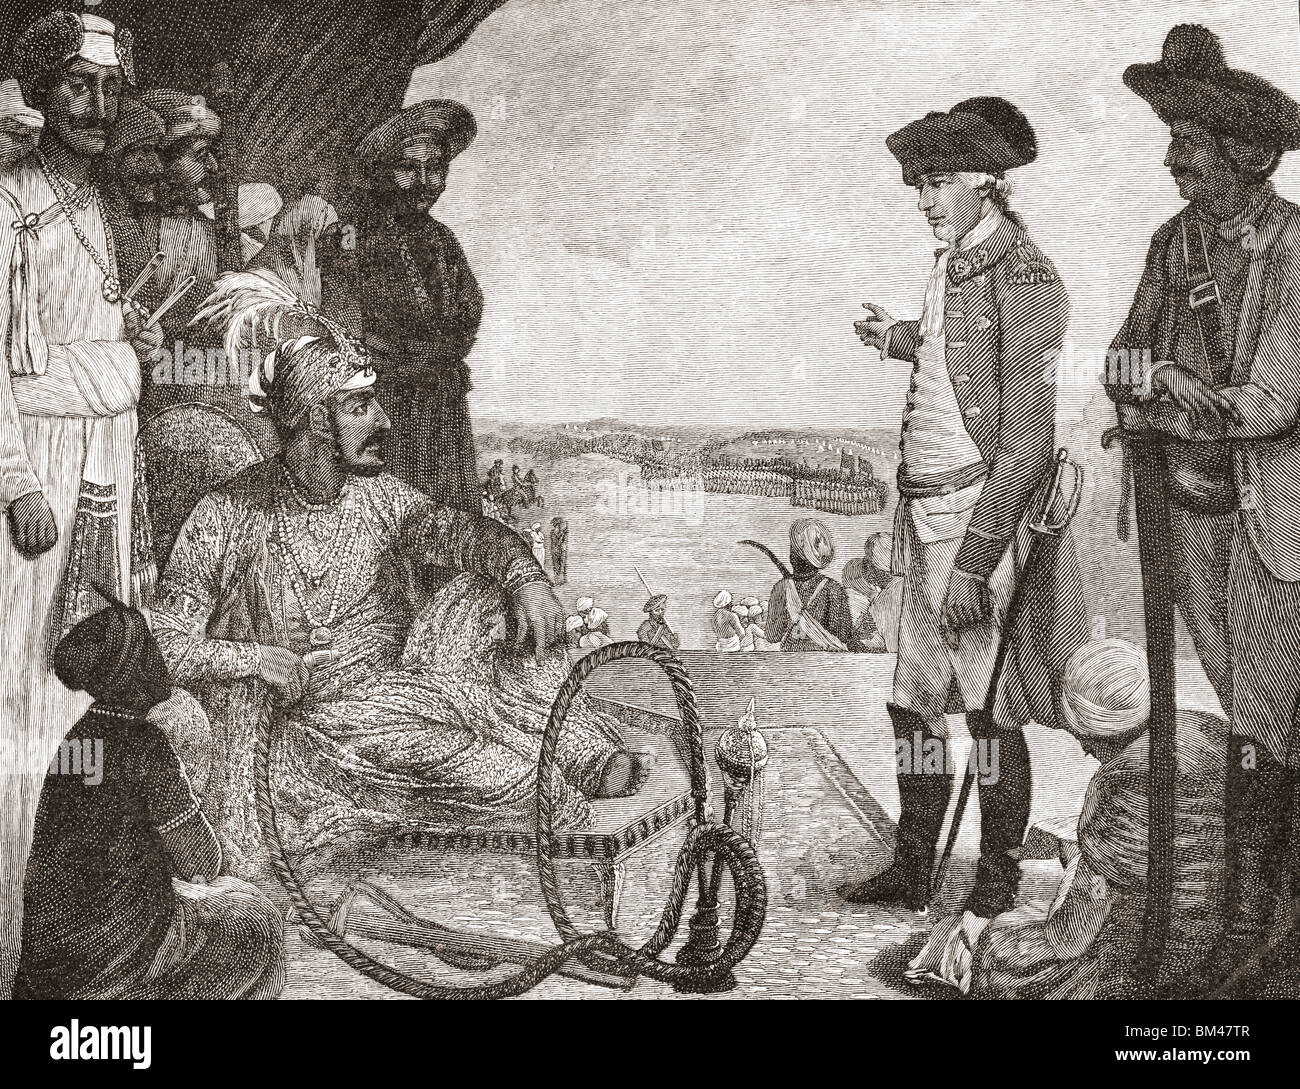 Shah Allum, Mogul of Hindustan, reviewing troops of The British East India company, c.1781. - Stock Image